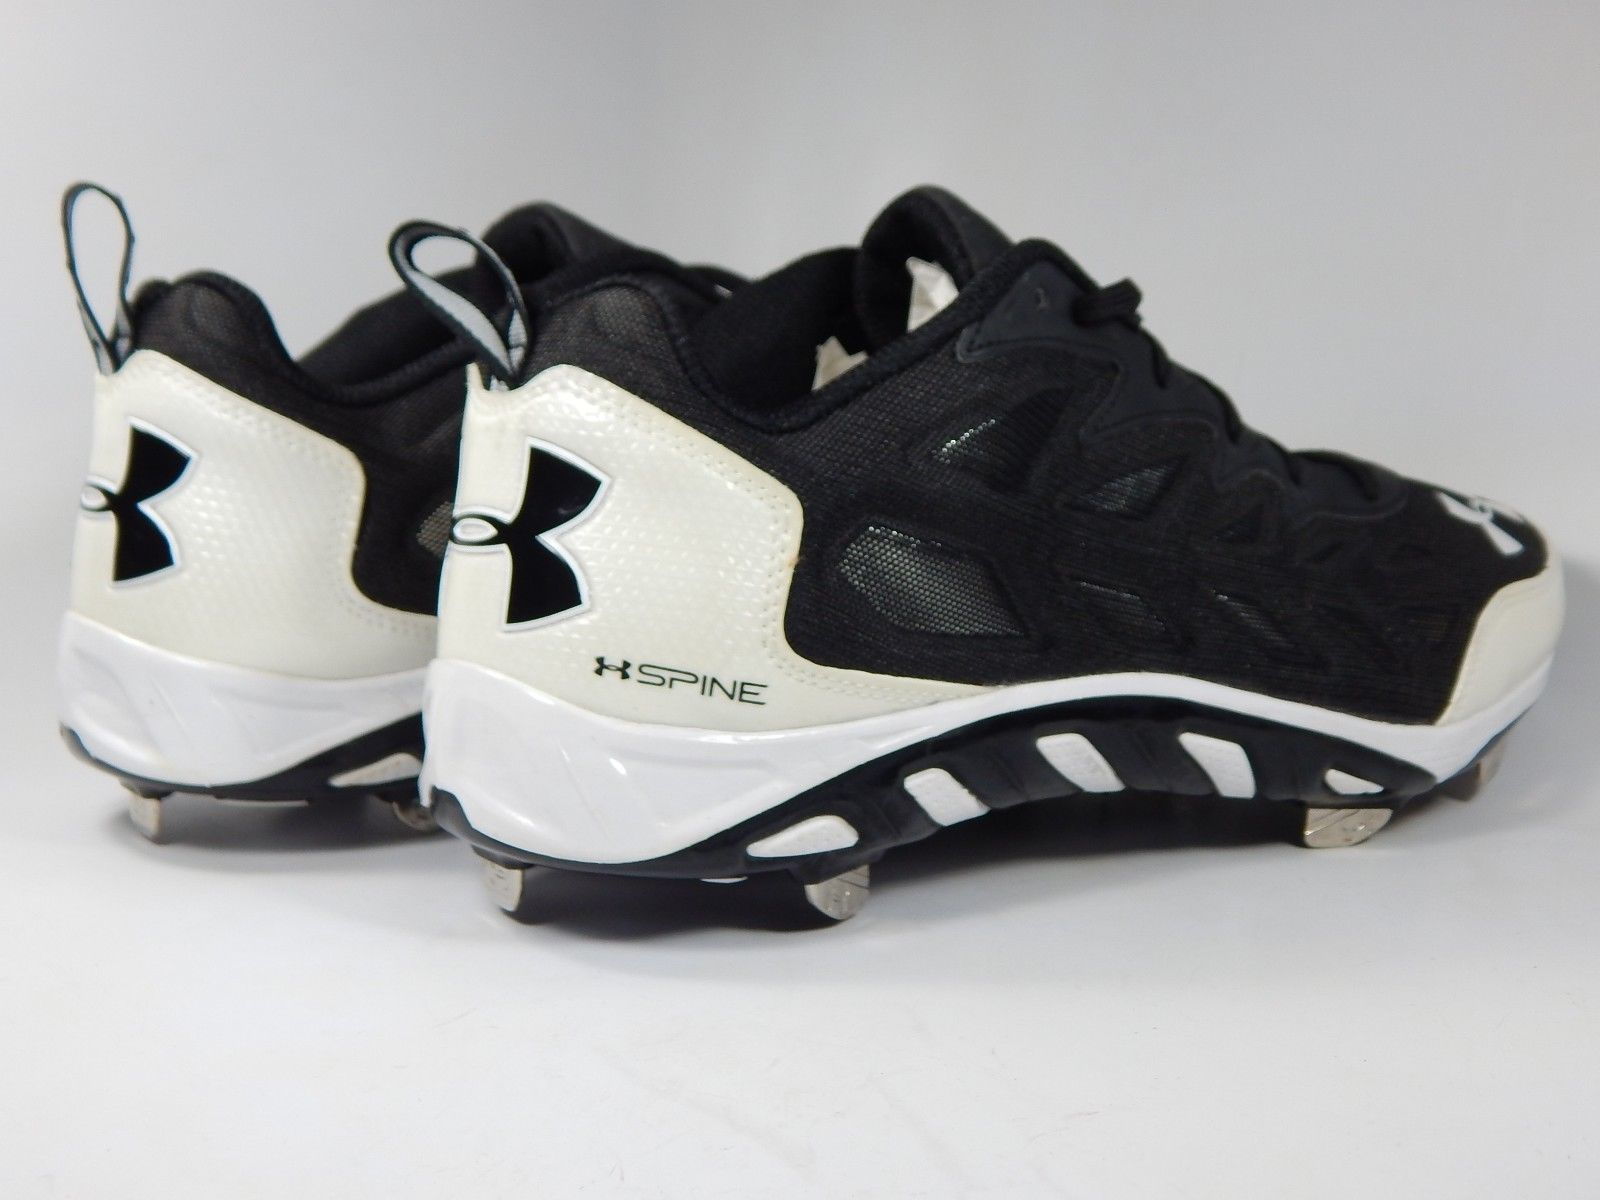 Under Armour Spine Low Top Size 9 M EU 42.5 Metal Baseball Cleats 1240624-011